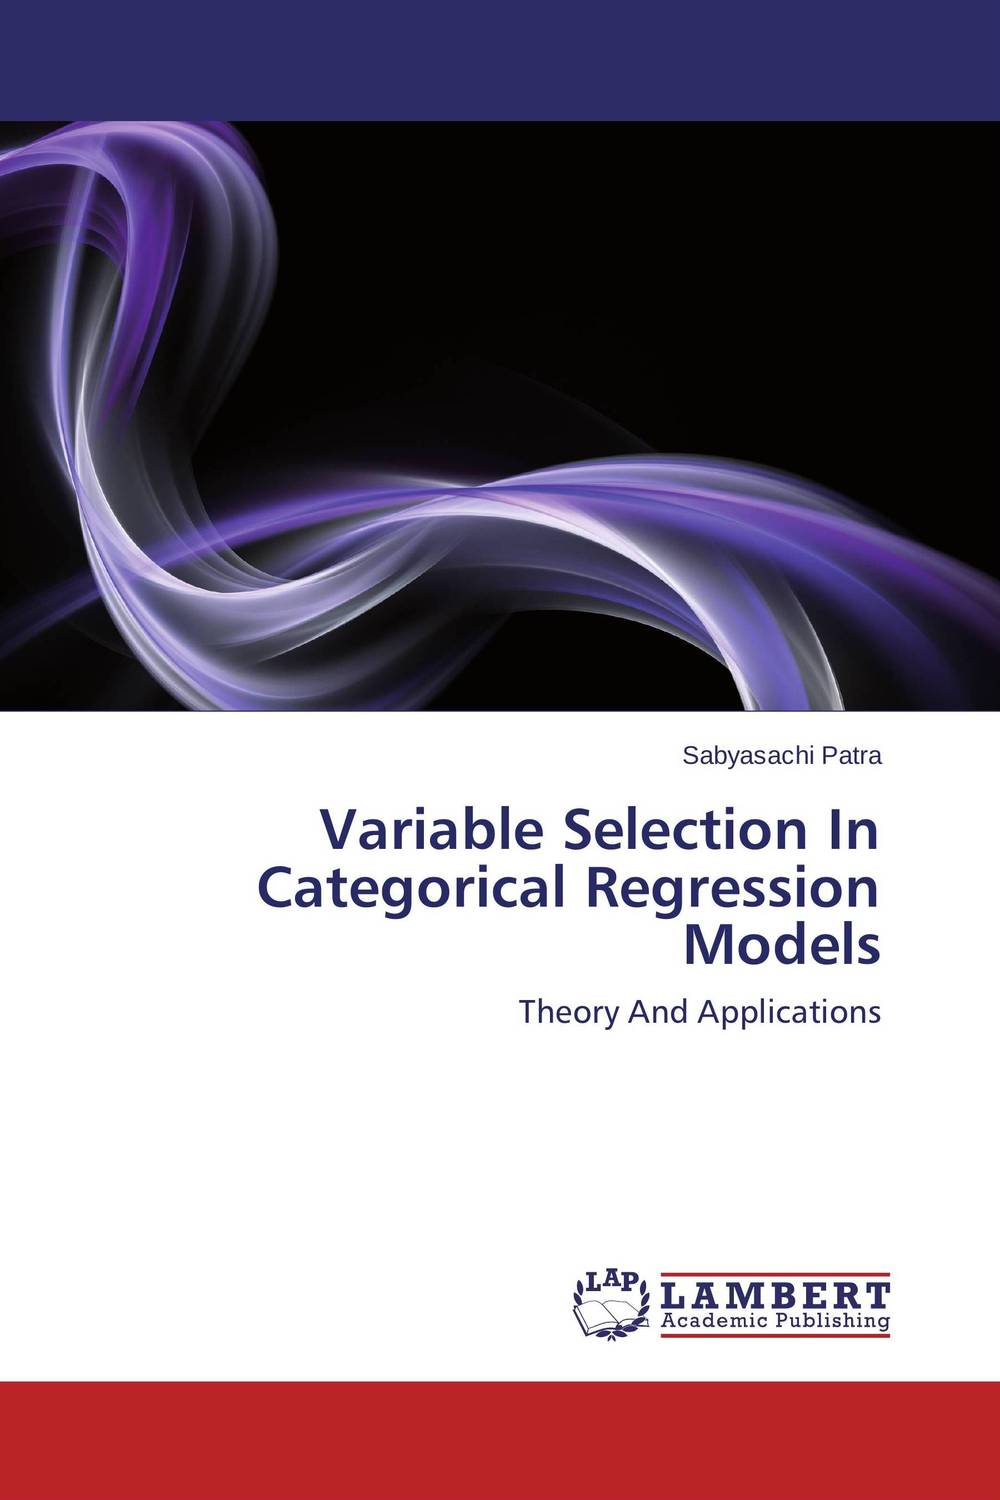 Variable Selection In Categorical Regression Models linear regression models with heteroscedastic errors